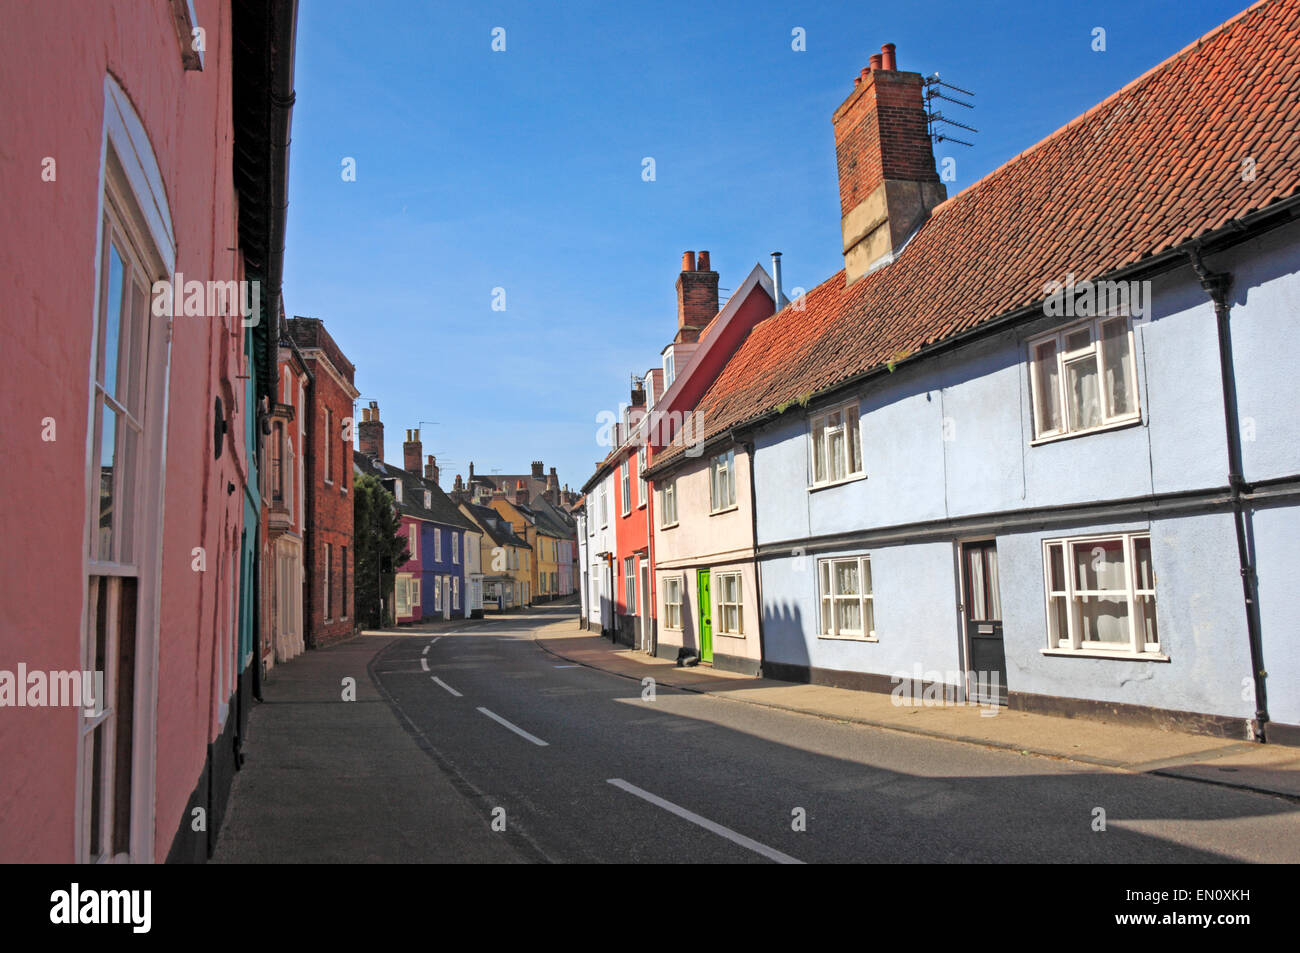 A view of old buildings in Bridge Street in the town of Bungay, Suffolk, England, United Kingdom. - Stock Image